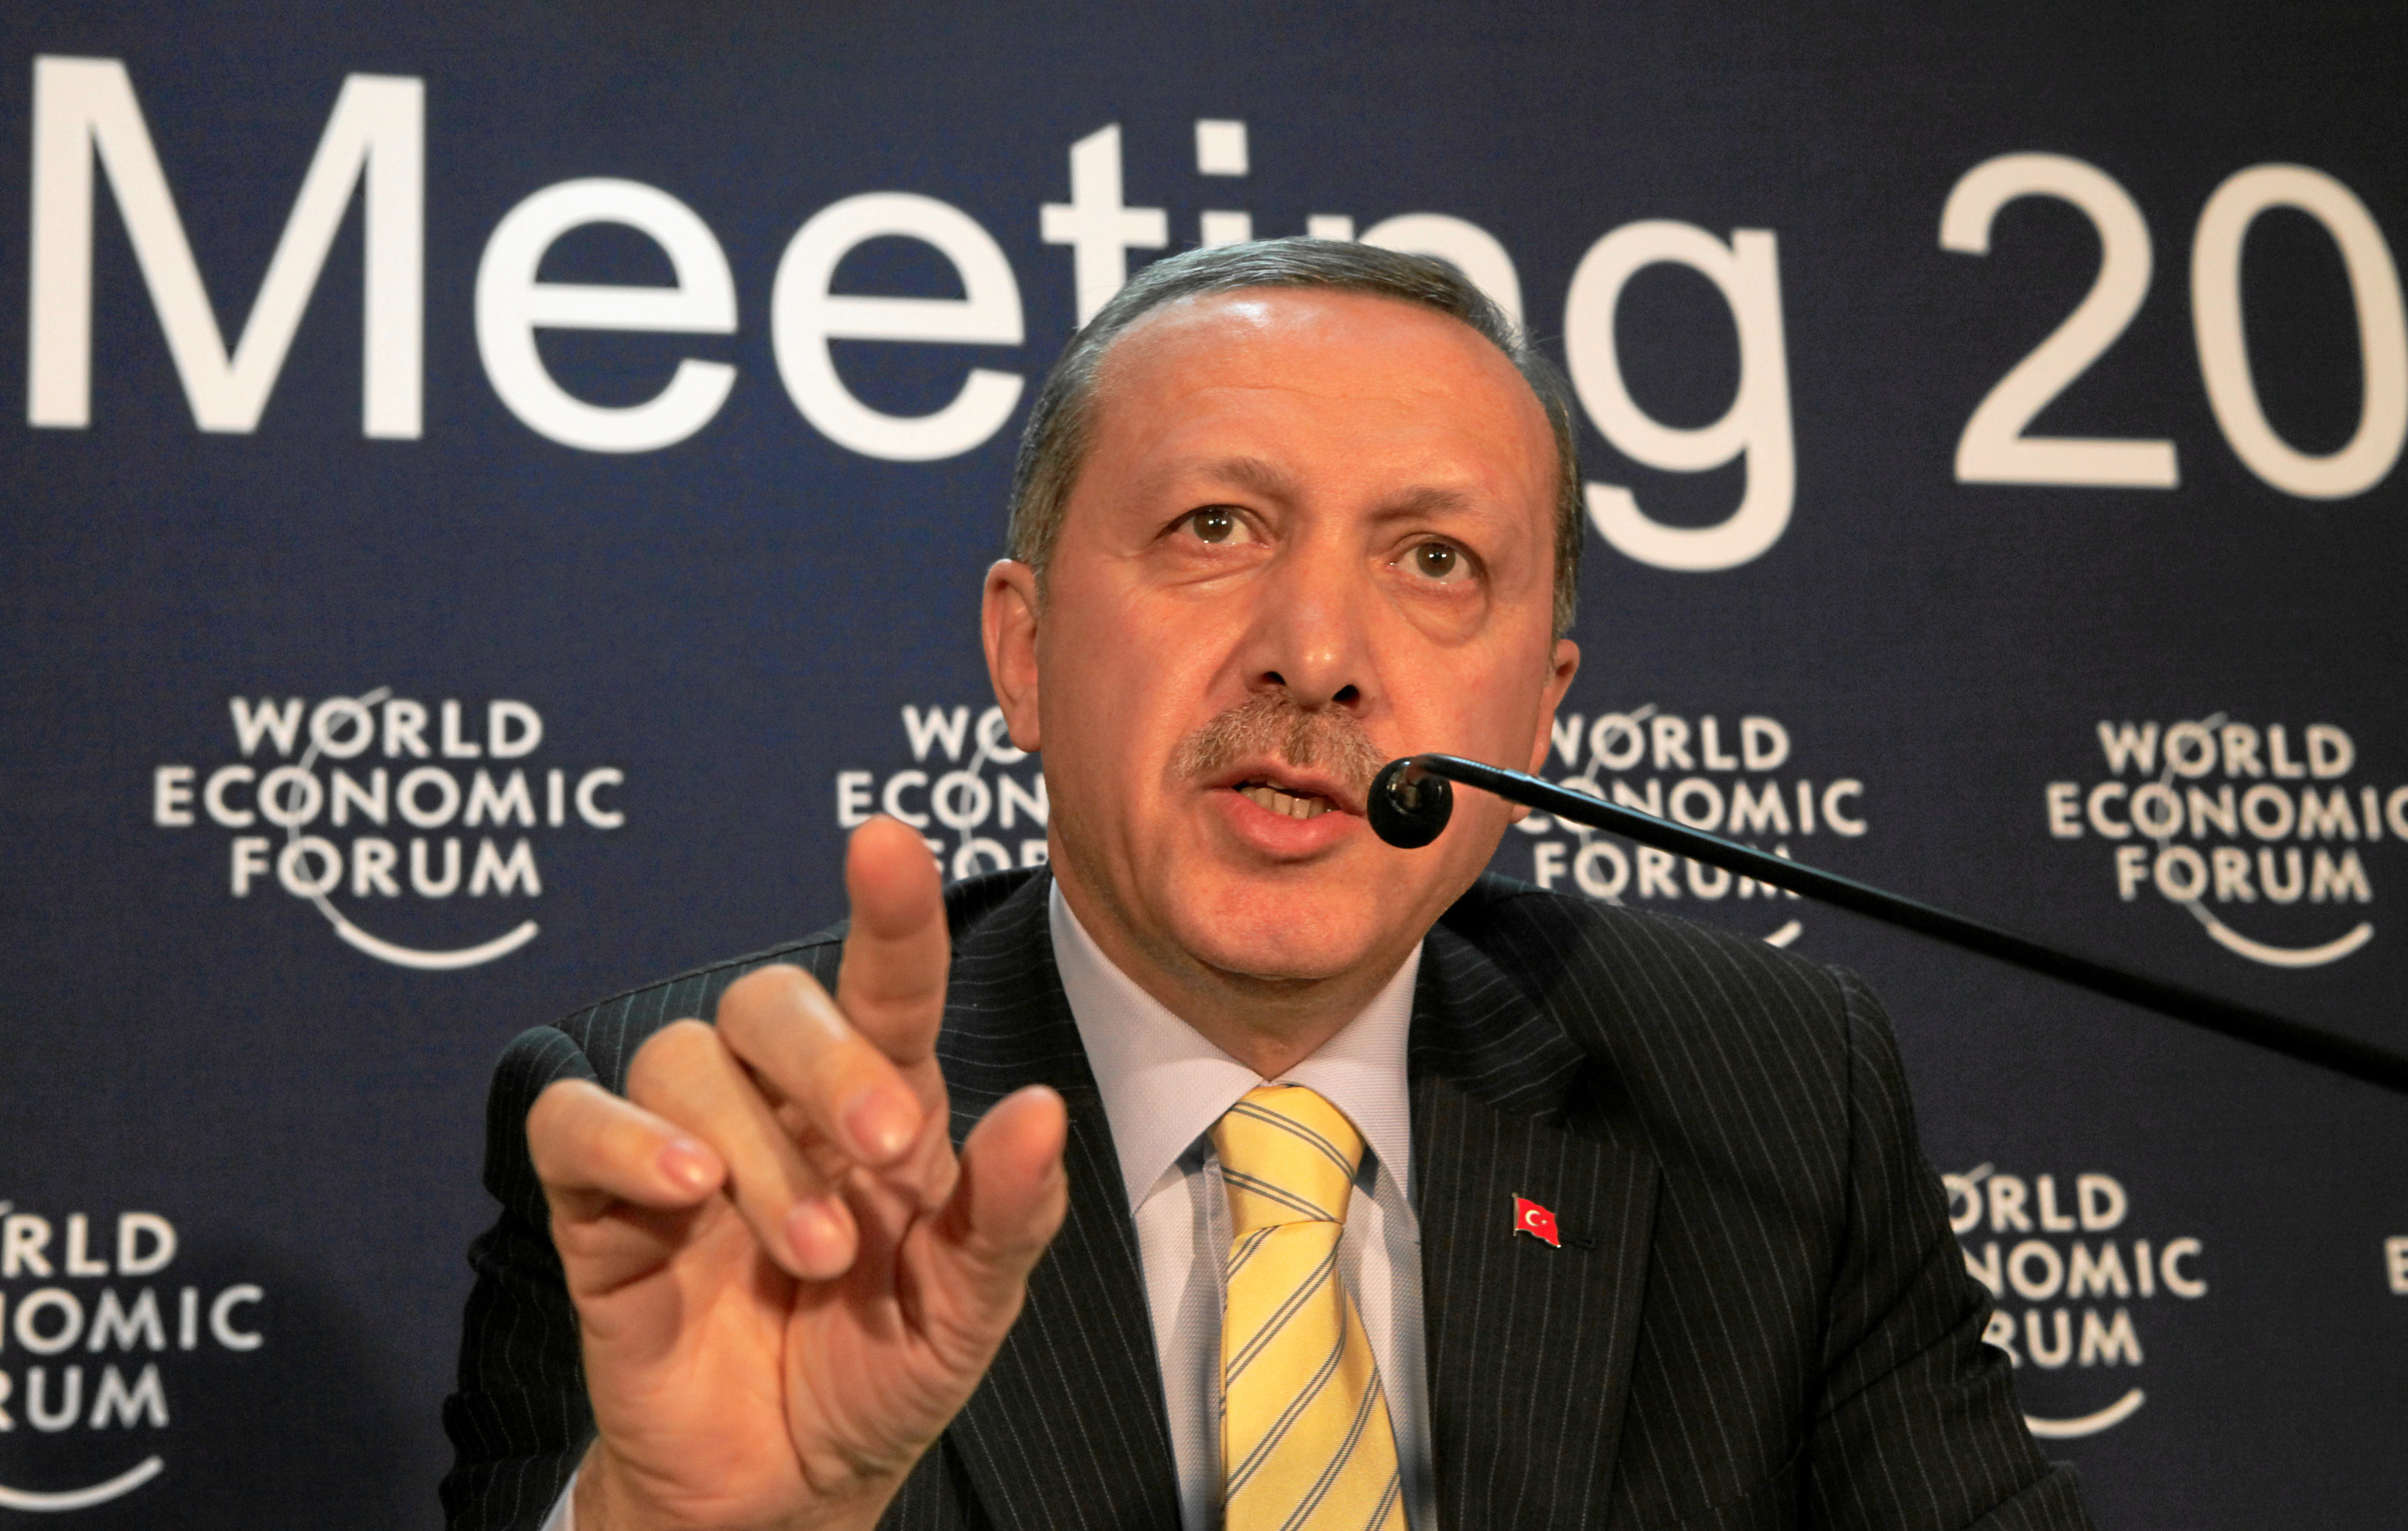 Recep Tayyip Erdogan (Image by Andy Mettler CC-BY-NC-SA 2.0)